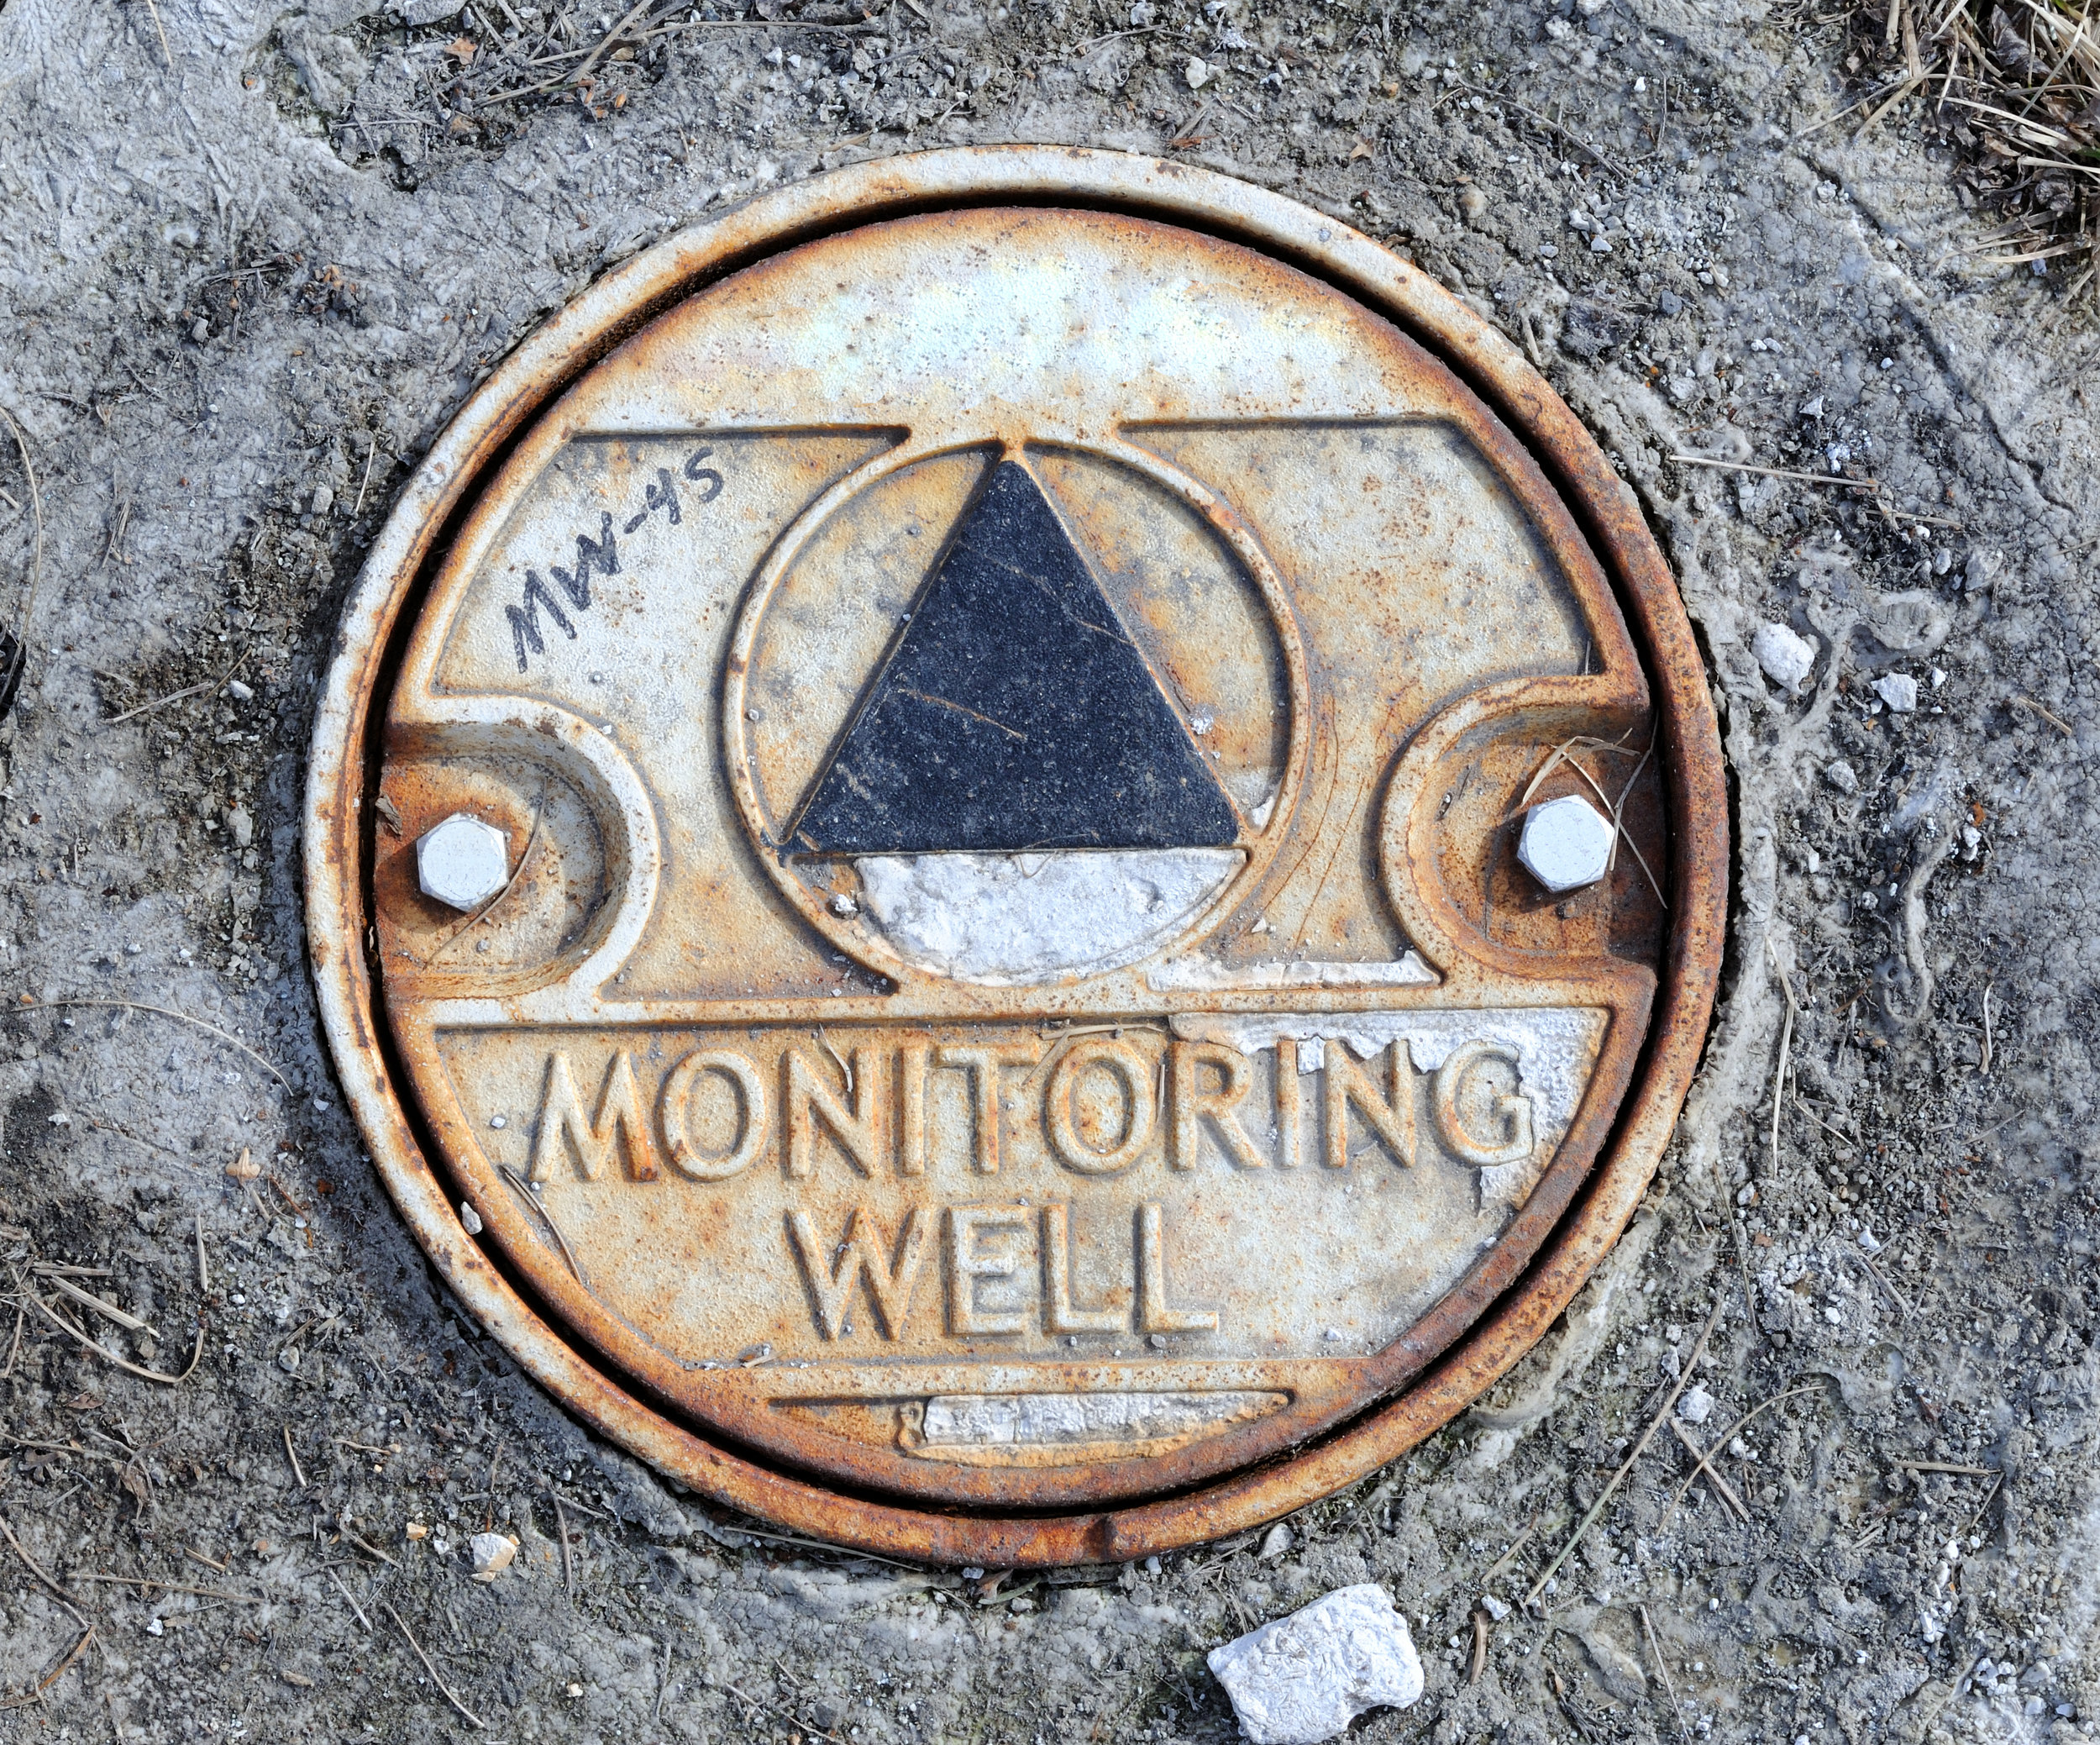 Commonly requested field services include grab and 24-hour composite sampling, potable water collection, groundwater monitoring, and on-site testing